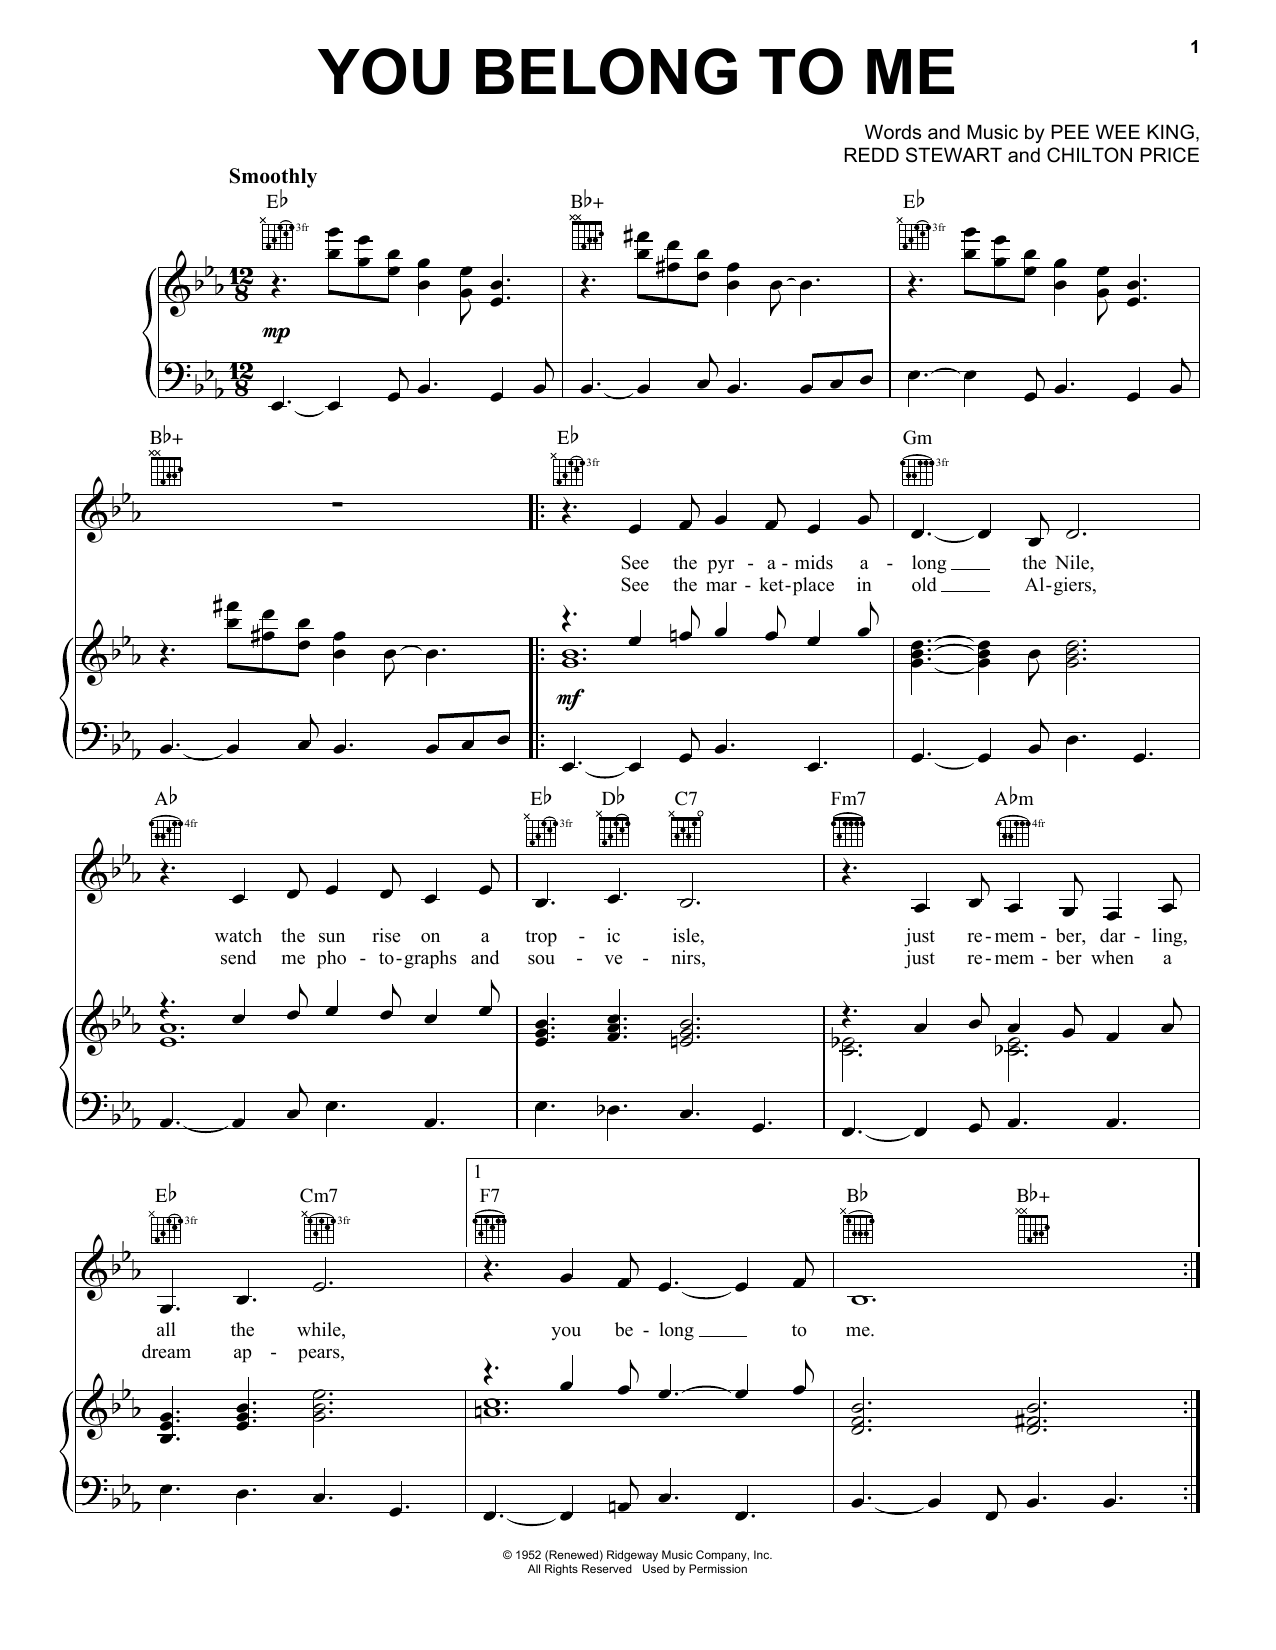 Patsy Cline You Belong To Me sheet music notes and chords. Download Printable PDF.